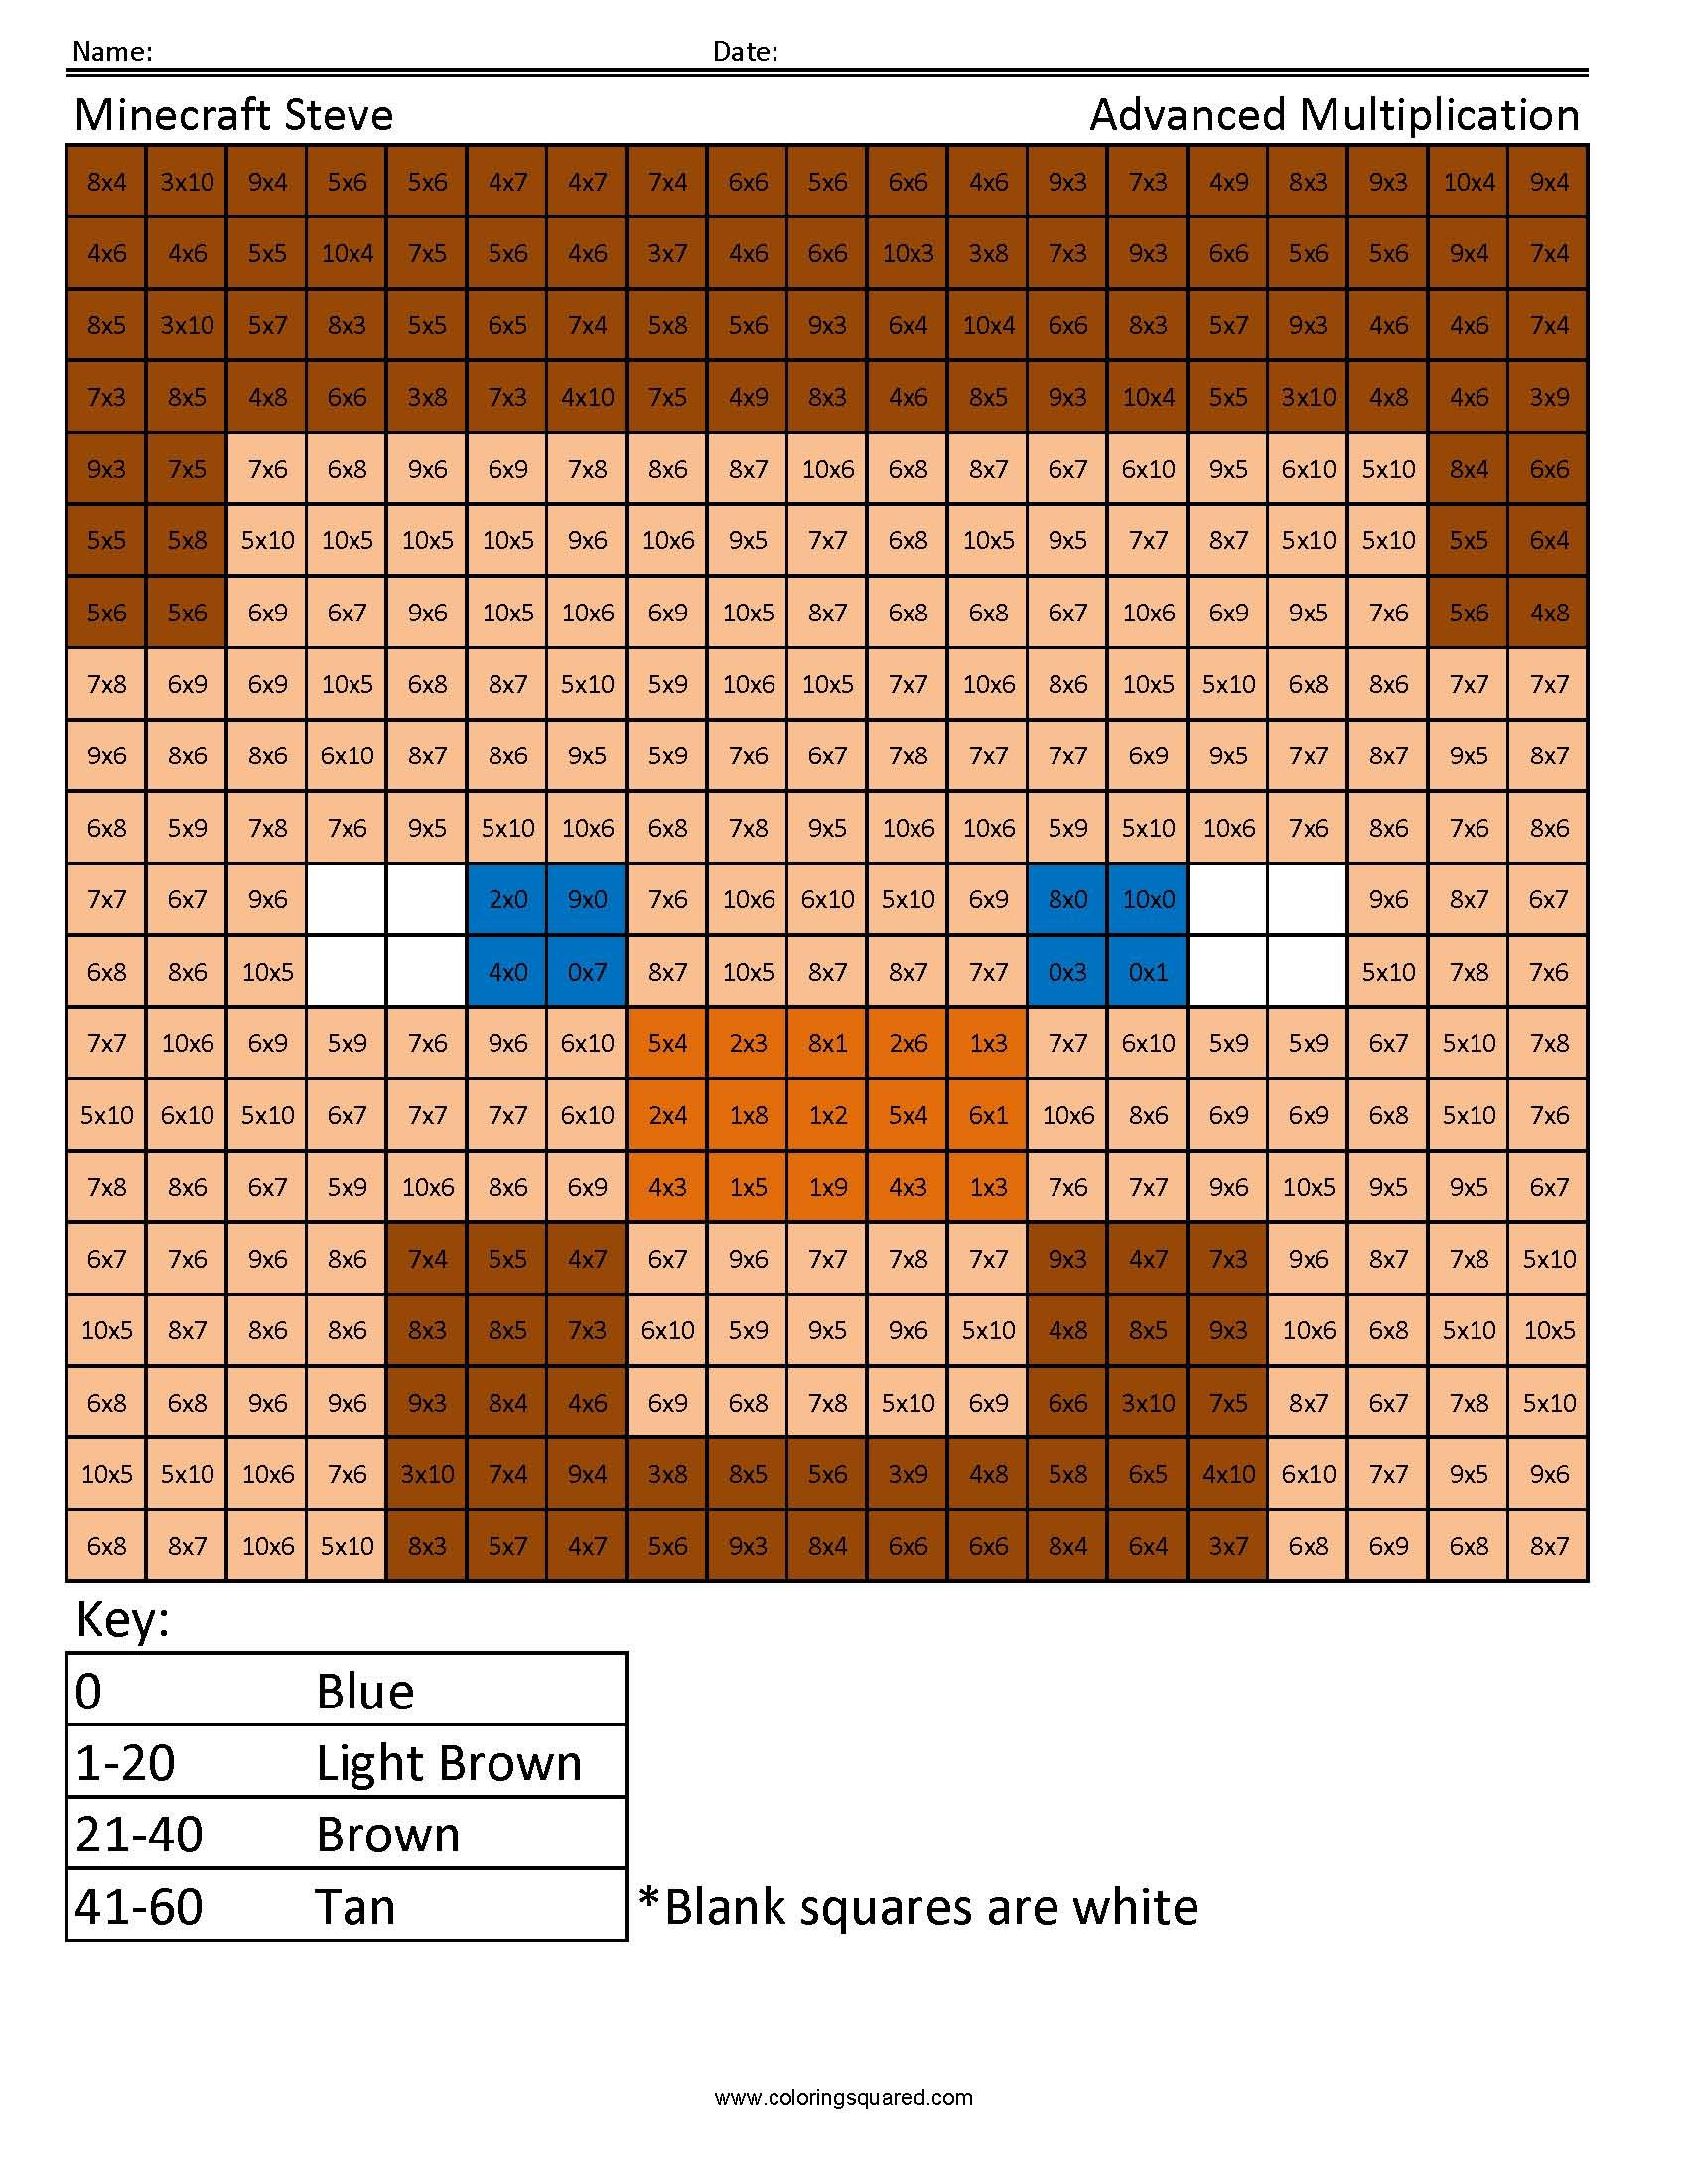 Free grid coloring worksheets - Coloring Squared Would Like You To Enjoy These Free Minecraft Multiplication And Division Coloring Pages For